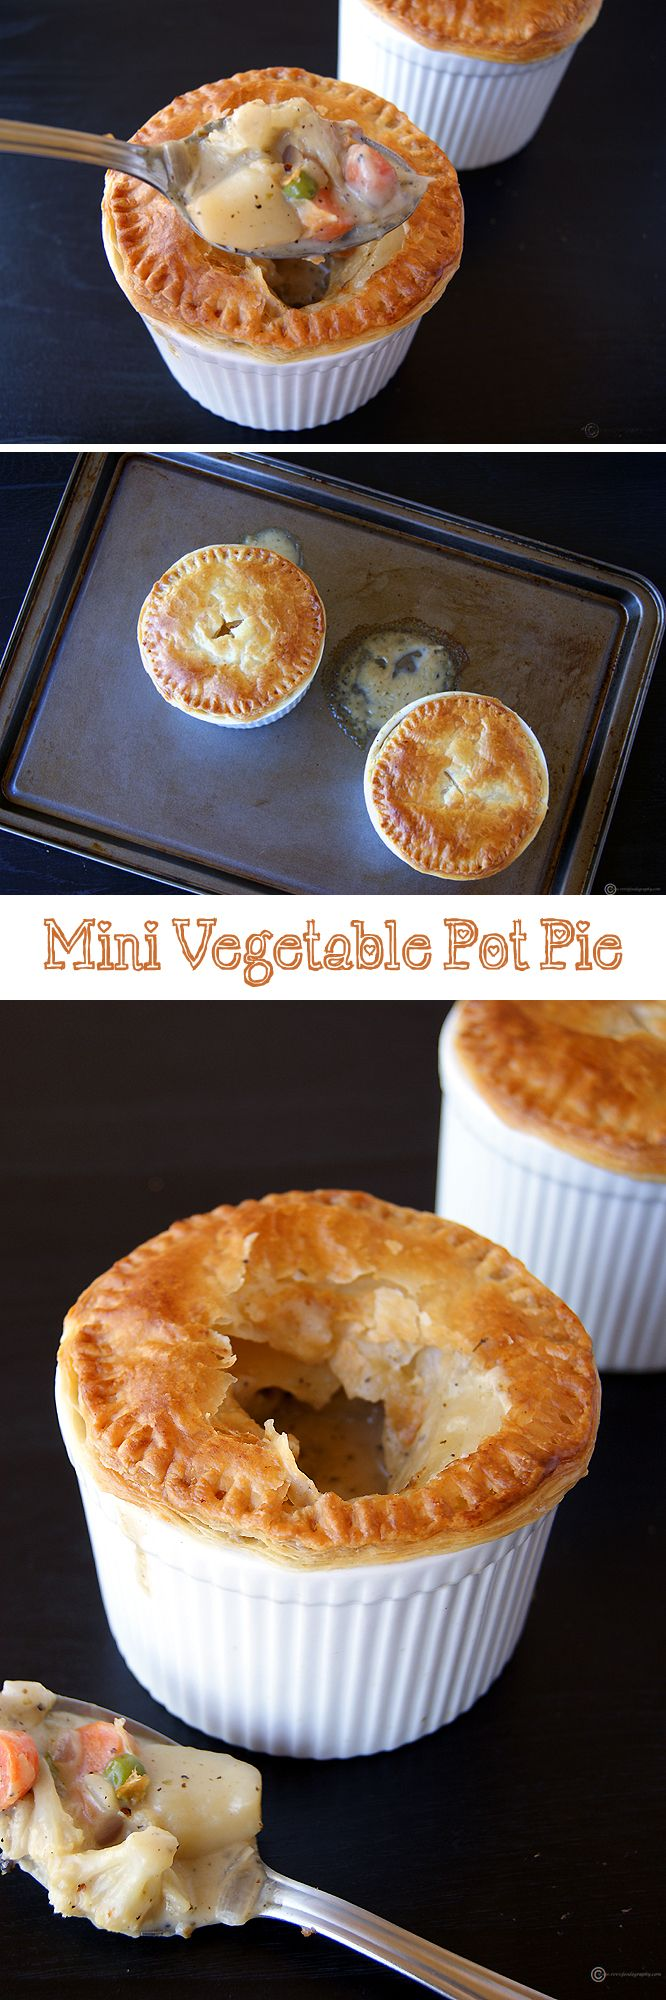 "A wonderful dish to make your kids eat their veggies. Cute looking and extremely delicious ""Mini Vegetable Pot Pie"". A flaky, buttery and crispy puff pastry on top of a creamy and juicy vegetable filling. Can be made Vegan very easily."